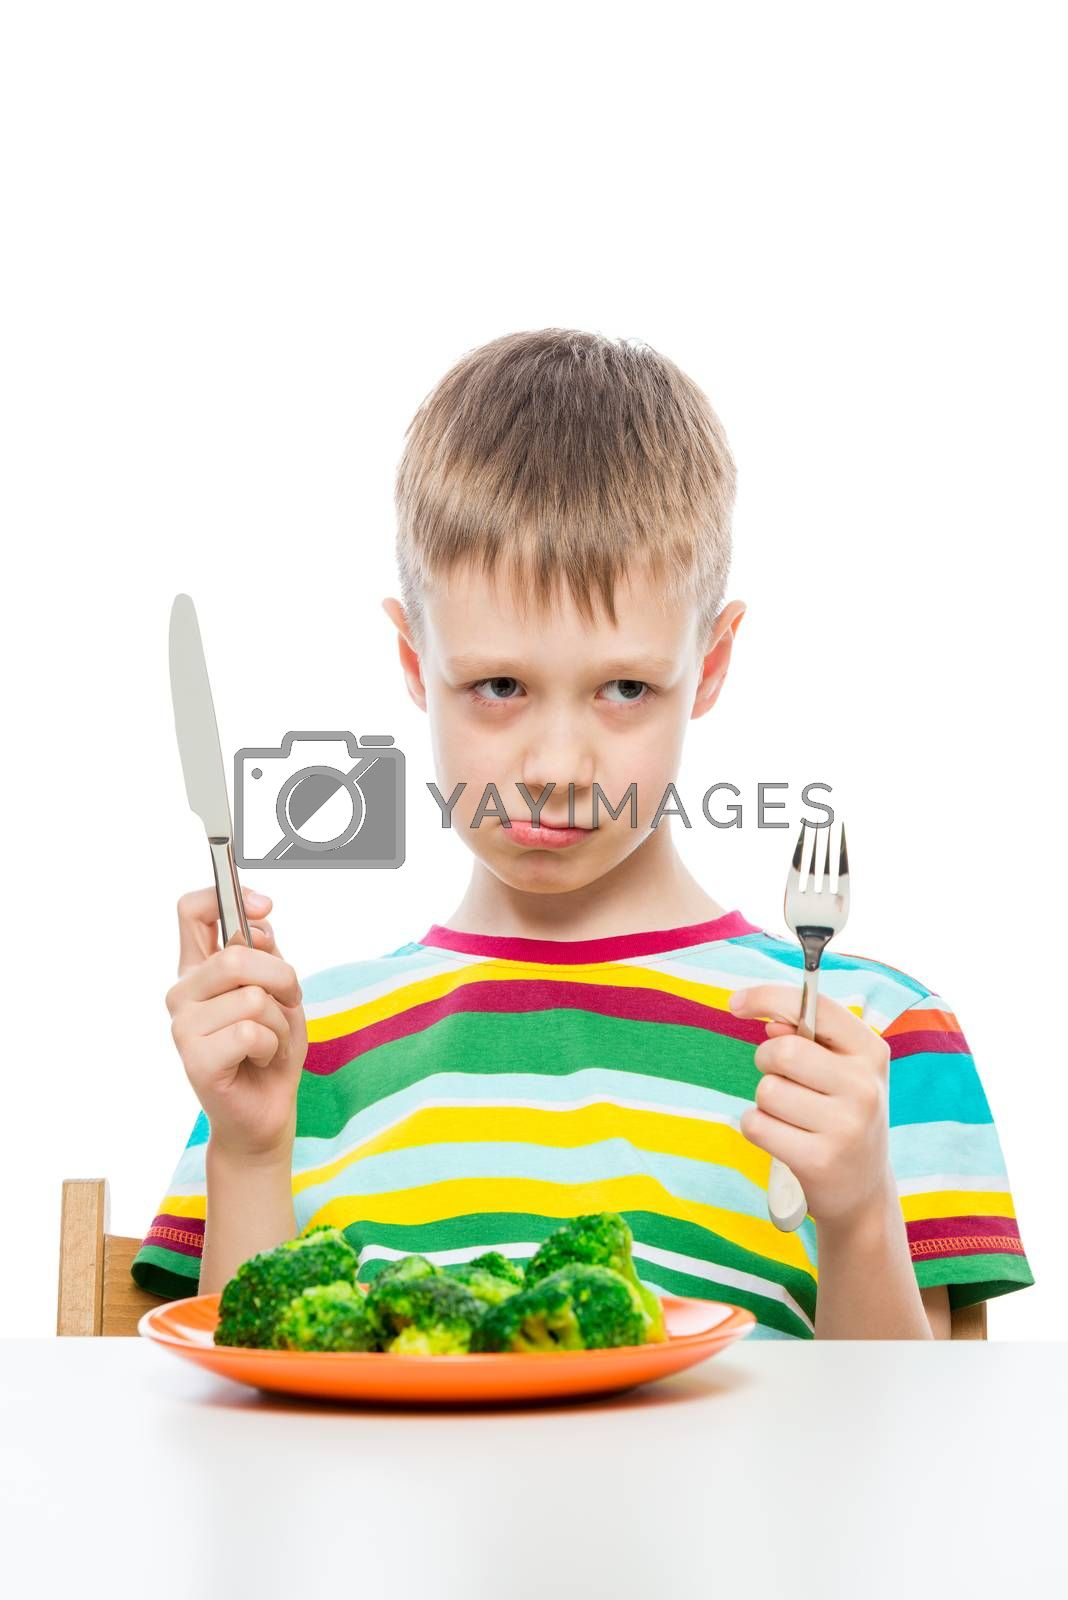 The boy with the unloved food broccoli on a white background